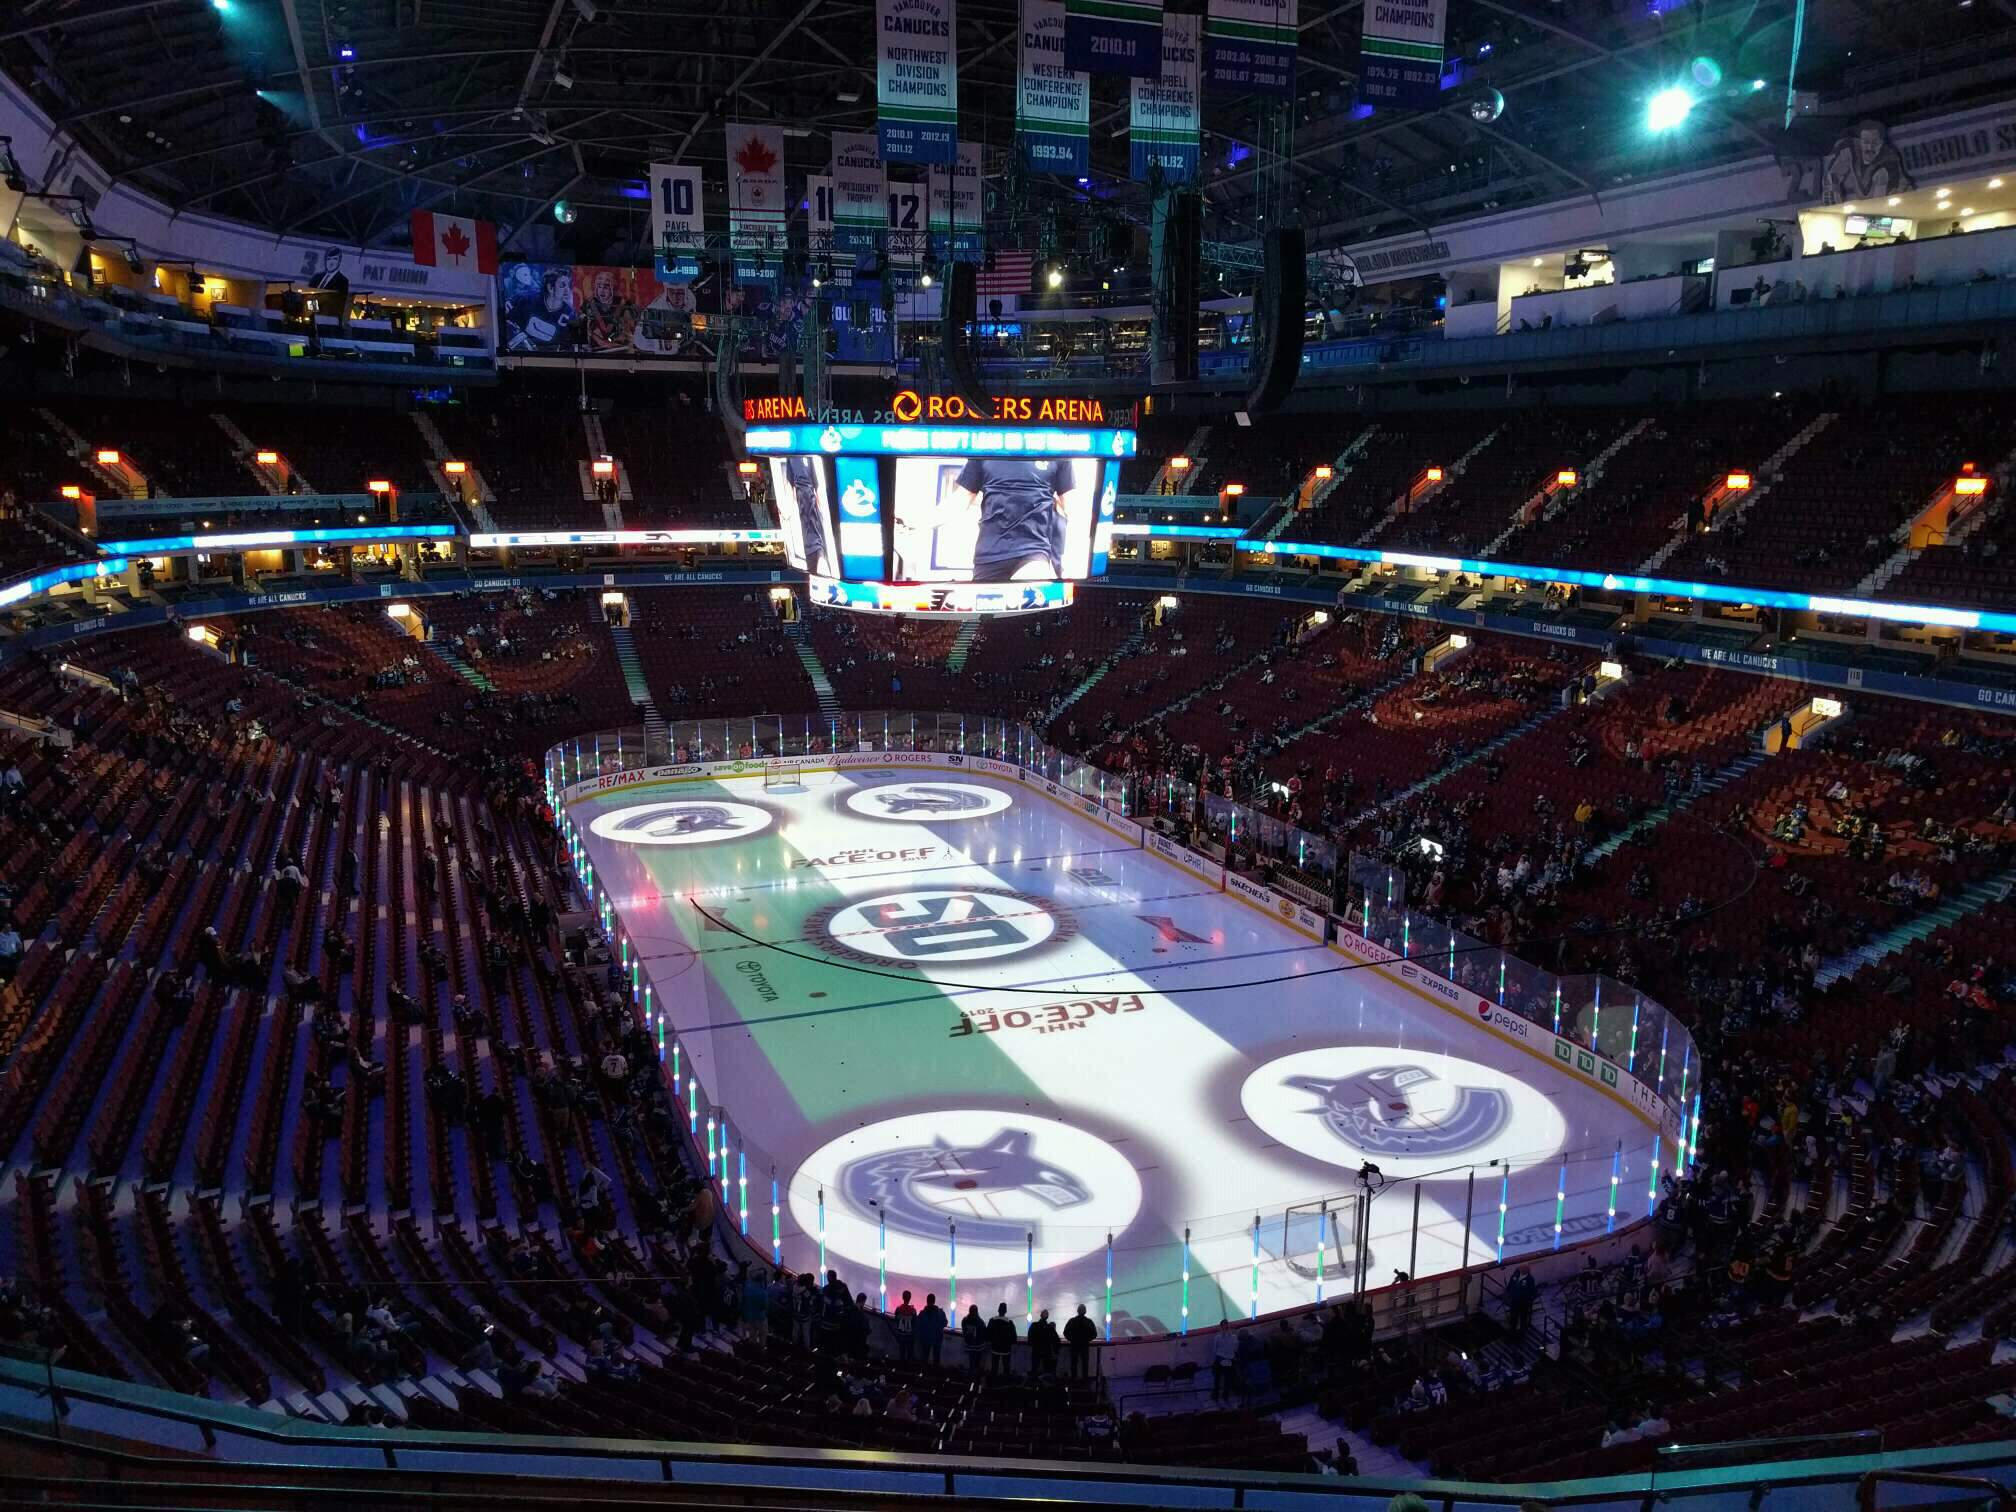 Rogers Arena Section 302 Row 9 Seat 106